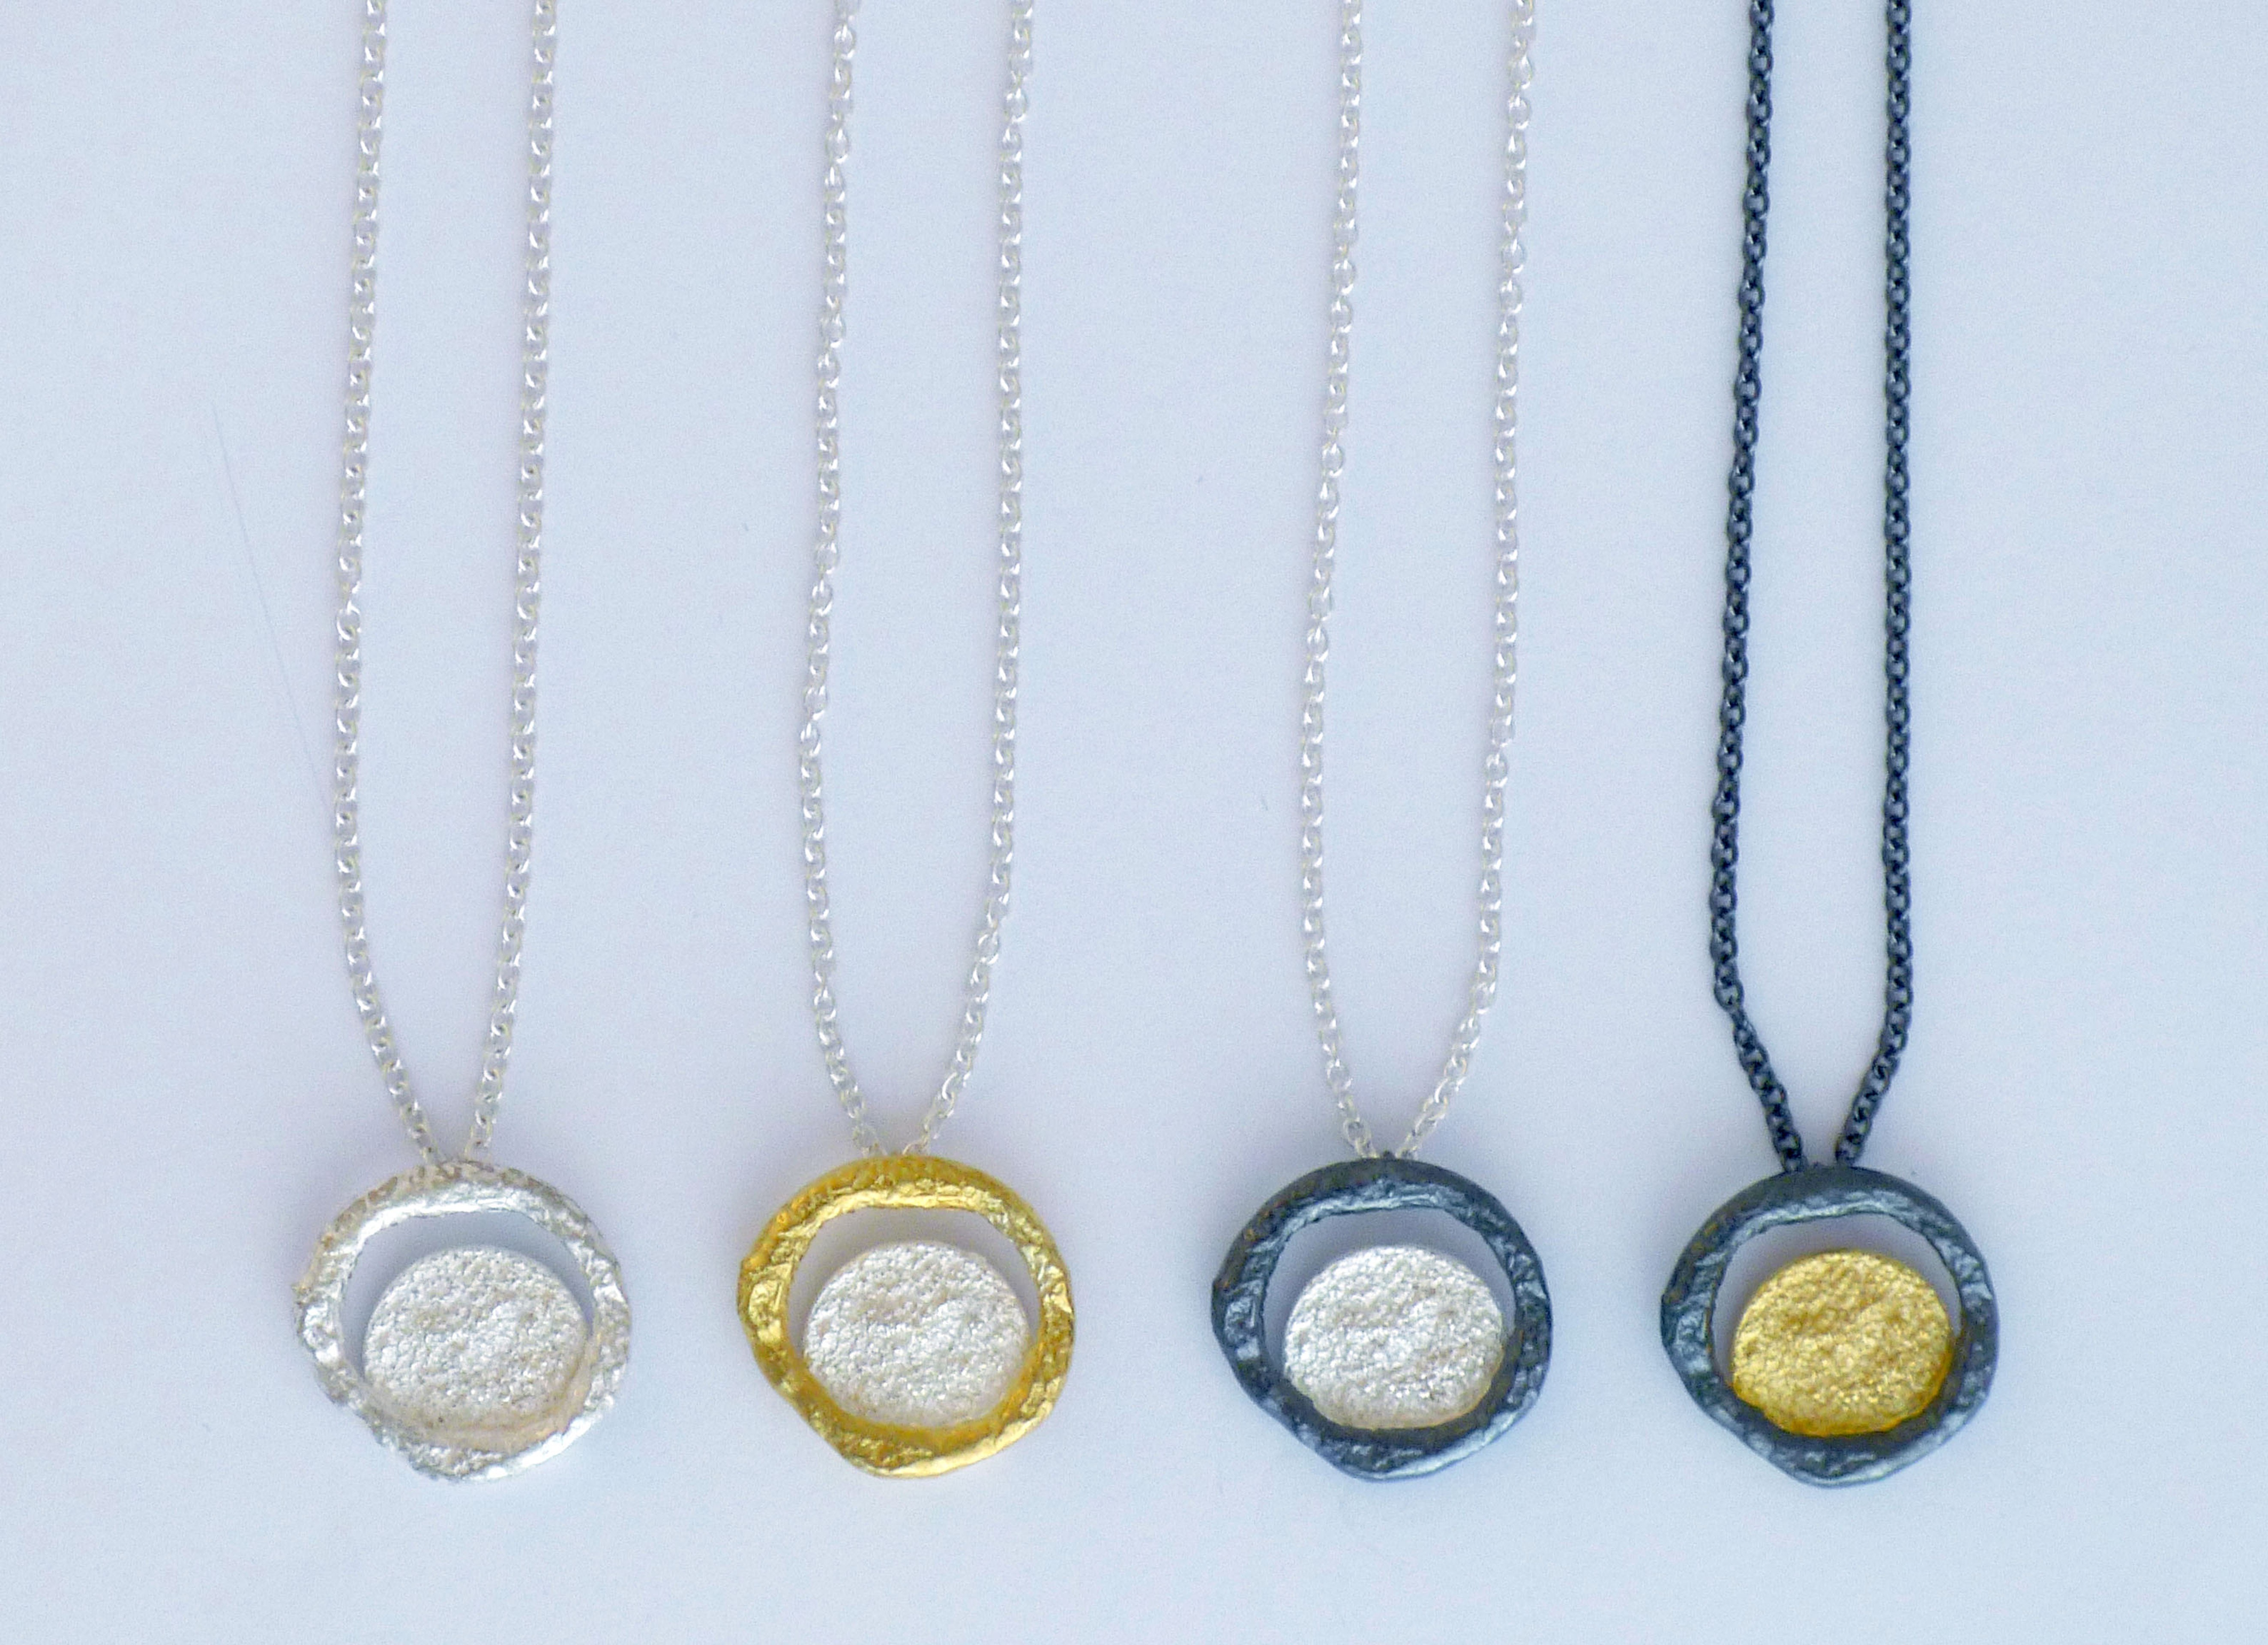 Mixed Composition necklaces